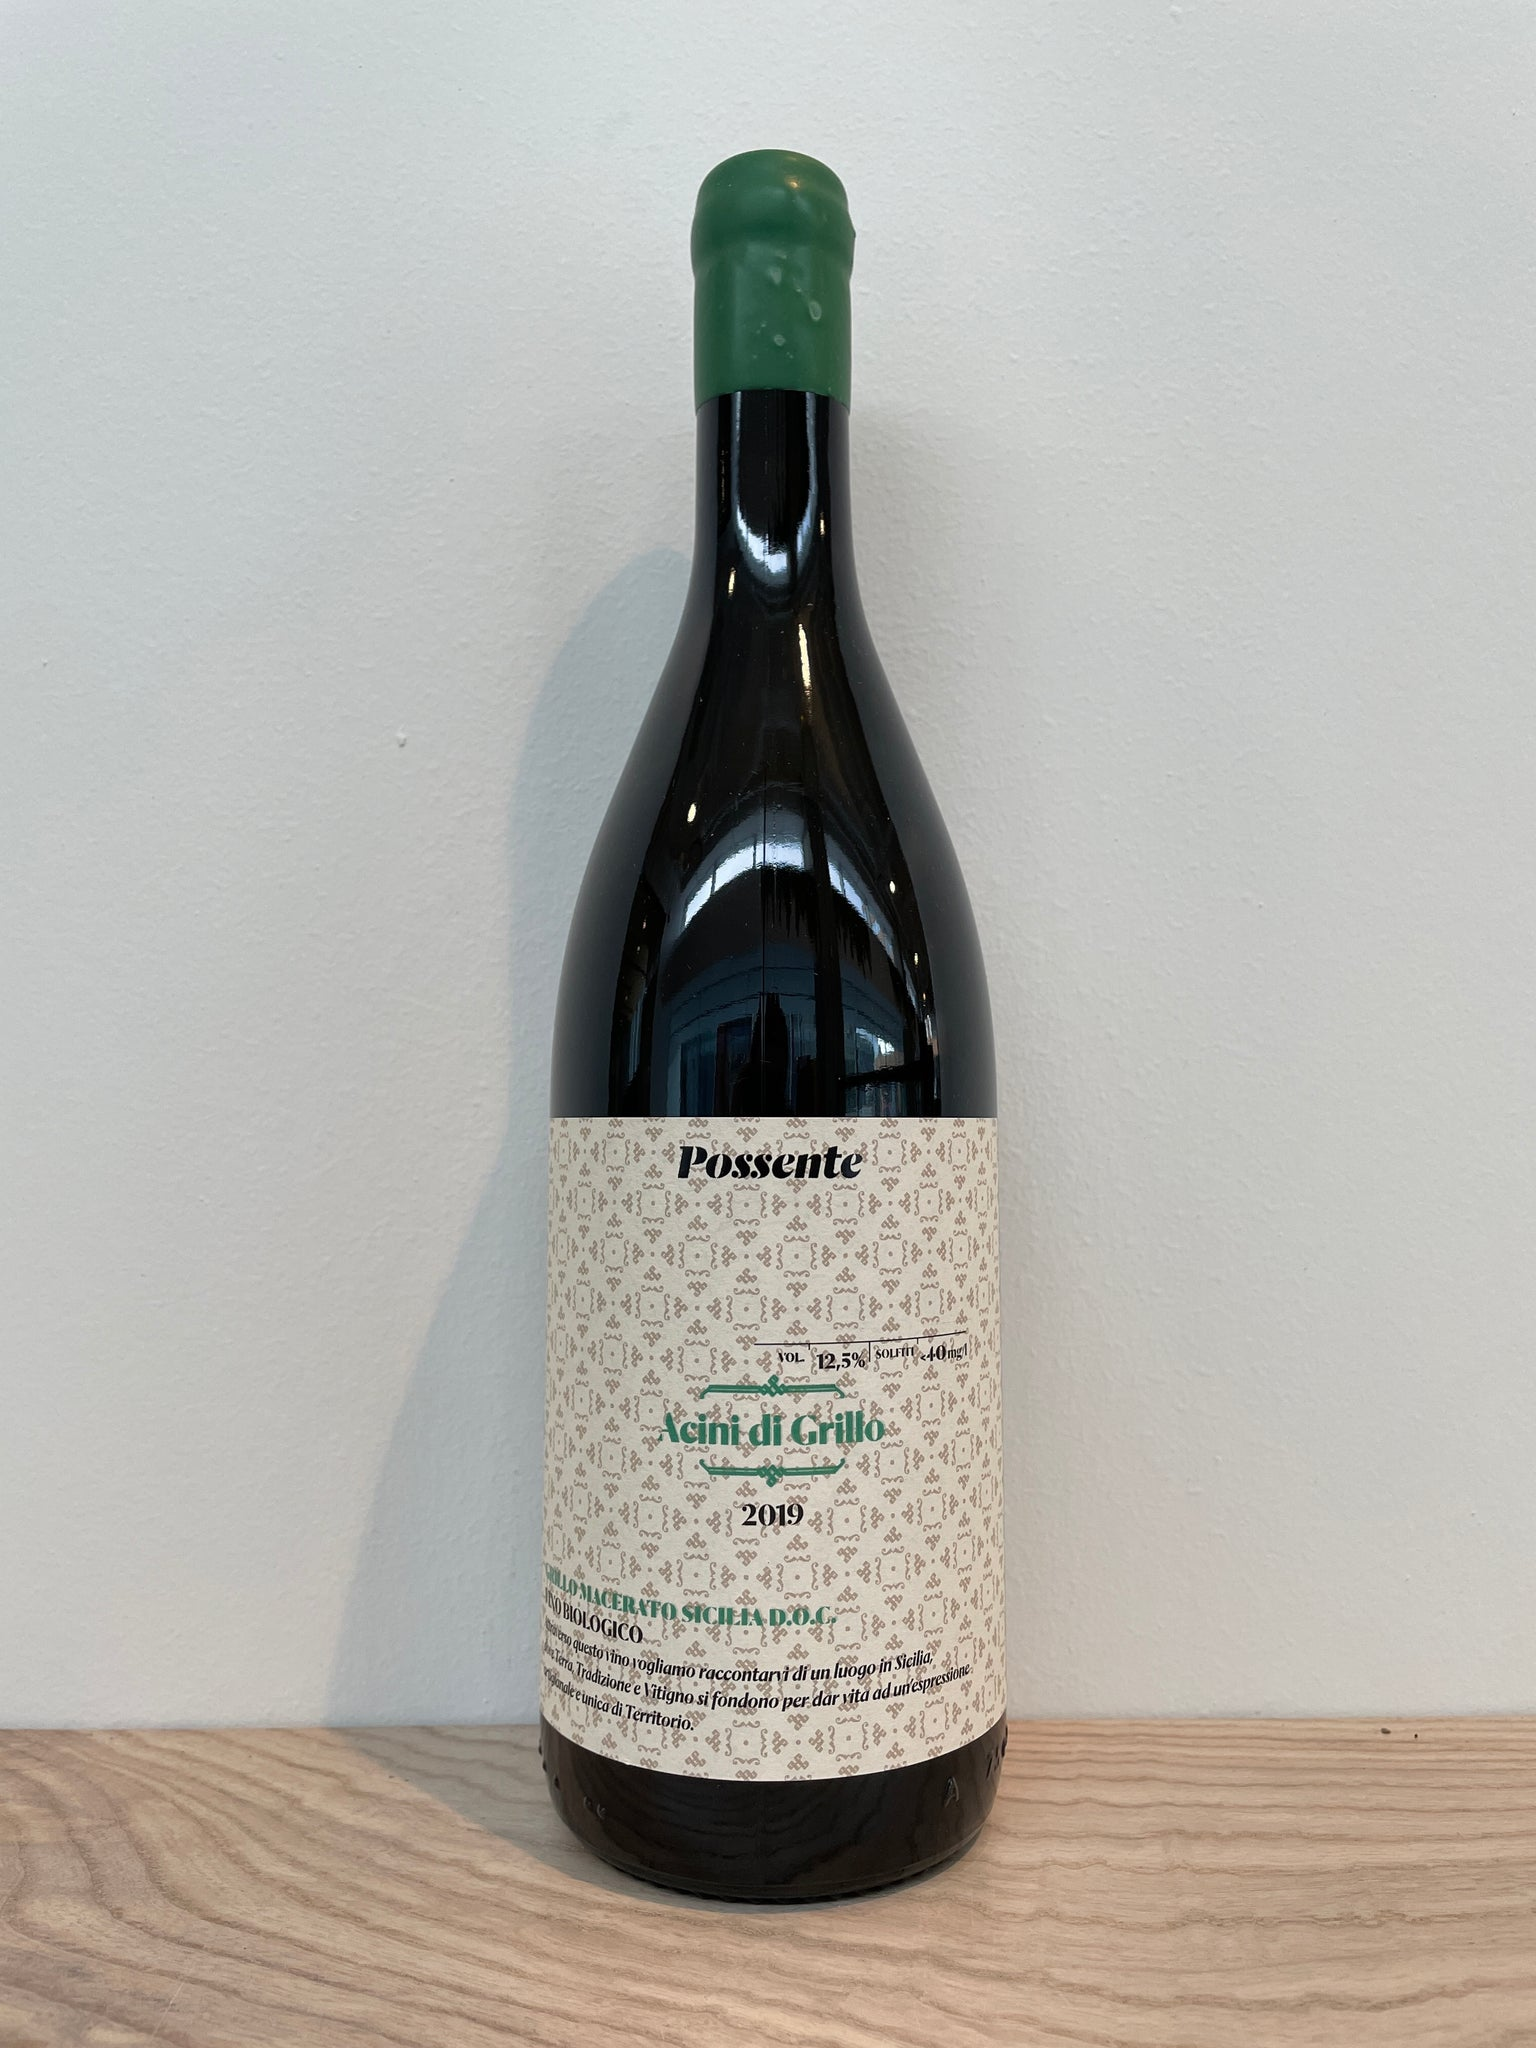 Possente - Acini del Grillo (750mL)